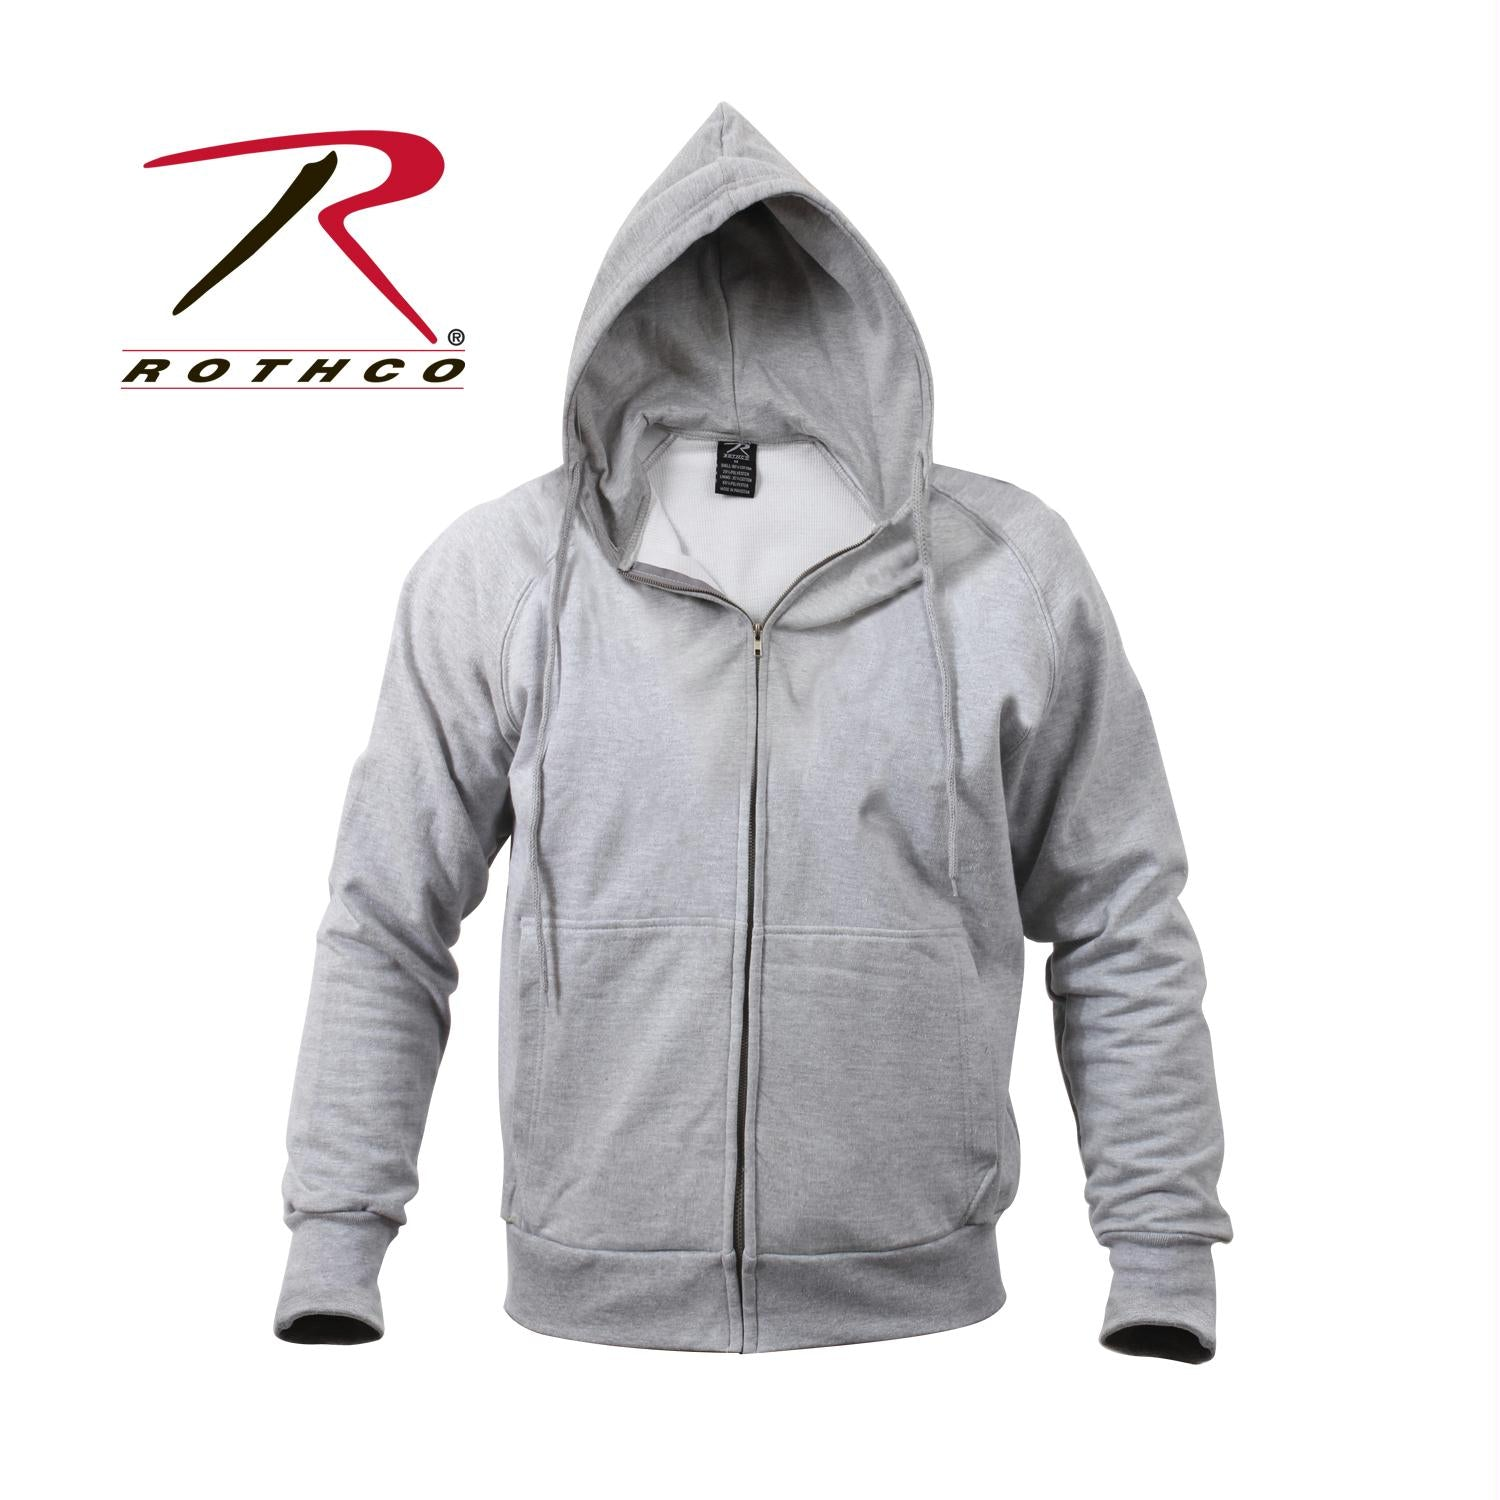 Rothco Thermal Lined Hooded Sweatshirt - Grey / L